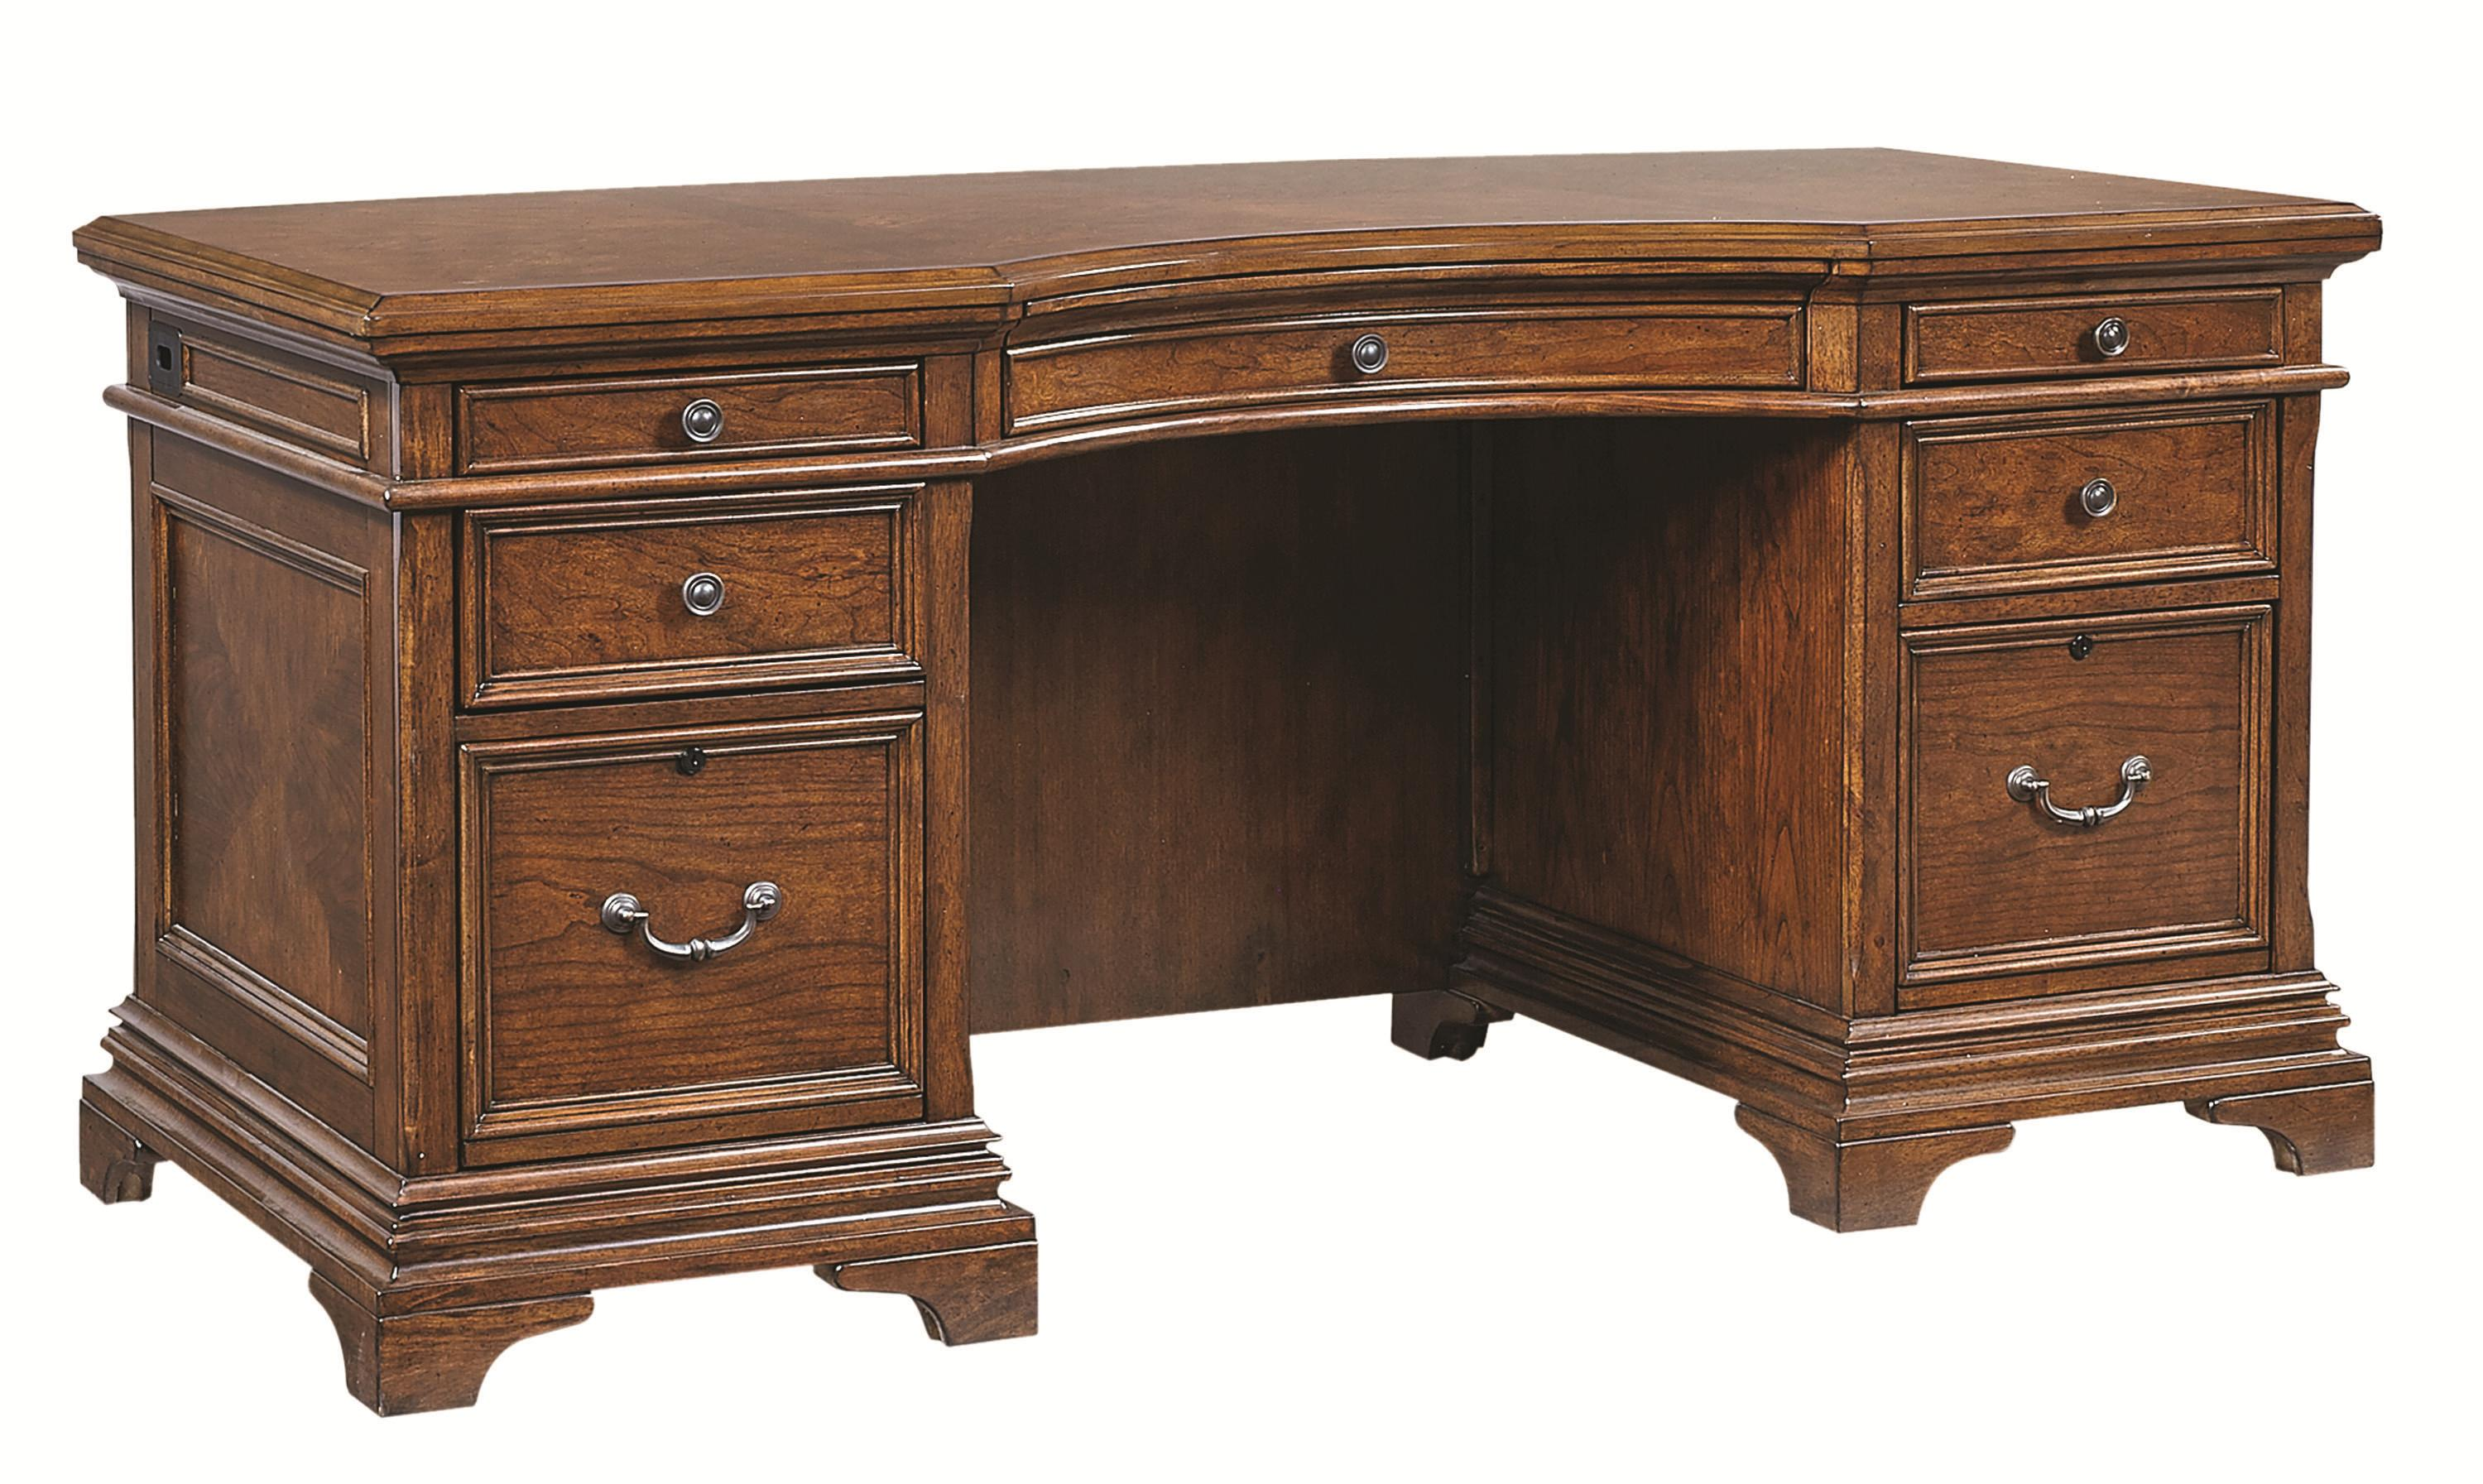 72Inch Curved Top Executive Desk with 4 Utility Drawers